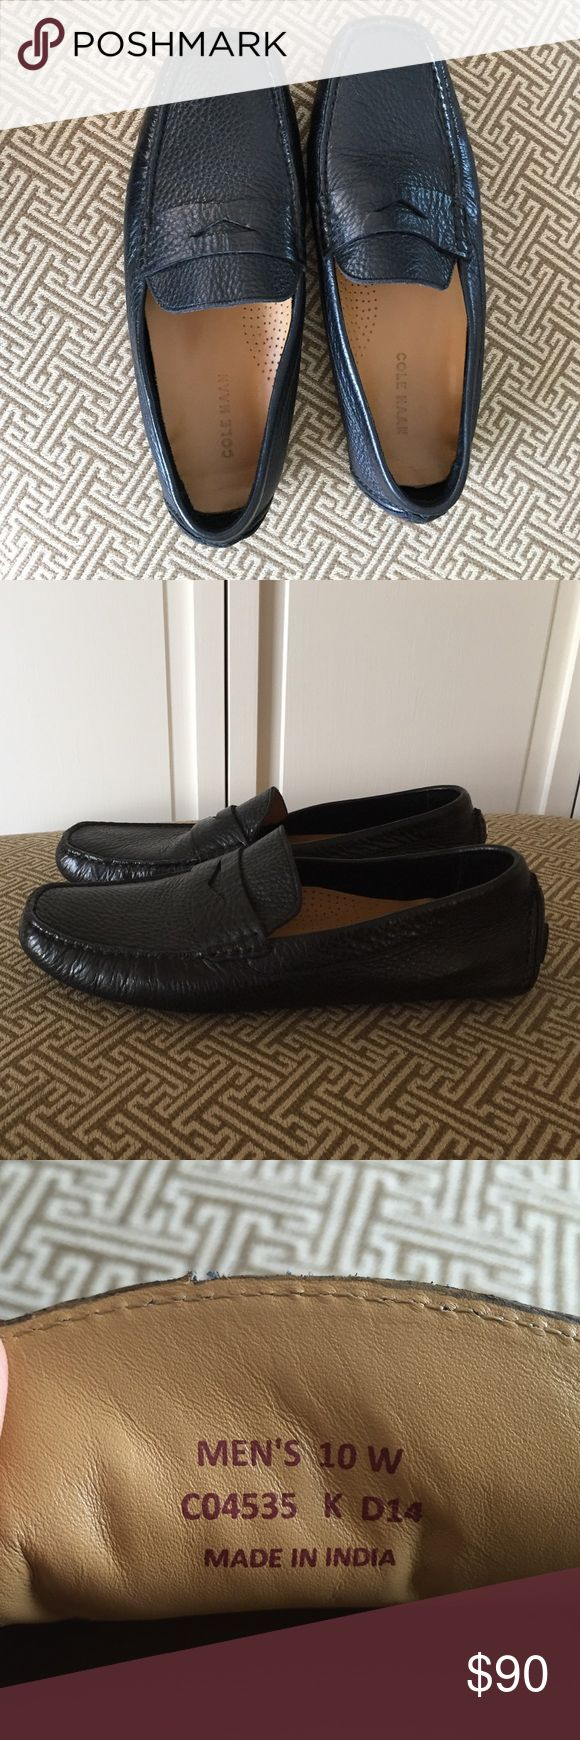 Worn once. Cole Haan loafers size 10 Wide. Black. This super-flexible penny driver has been meticulously crafted in soft pebbled leather and handsewn for durability. Perfect for travel or casual weekend looks. Worn once. Cole Haan Shoes Loafers & Slip-Ons